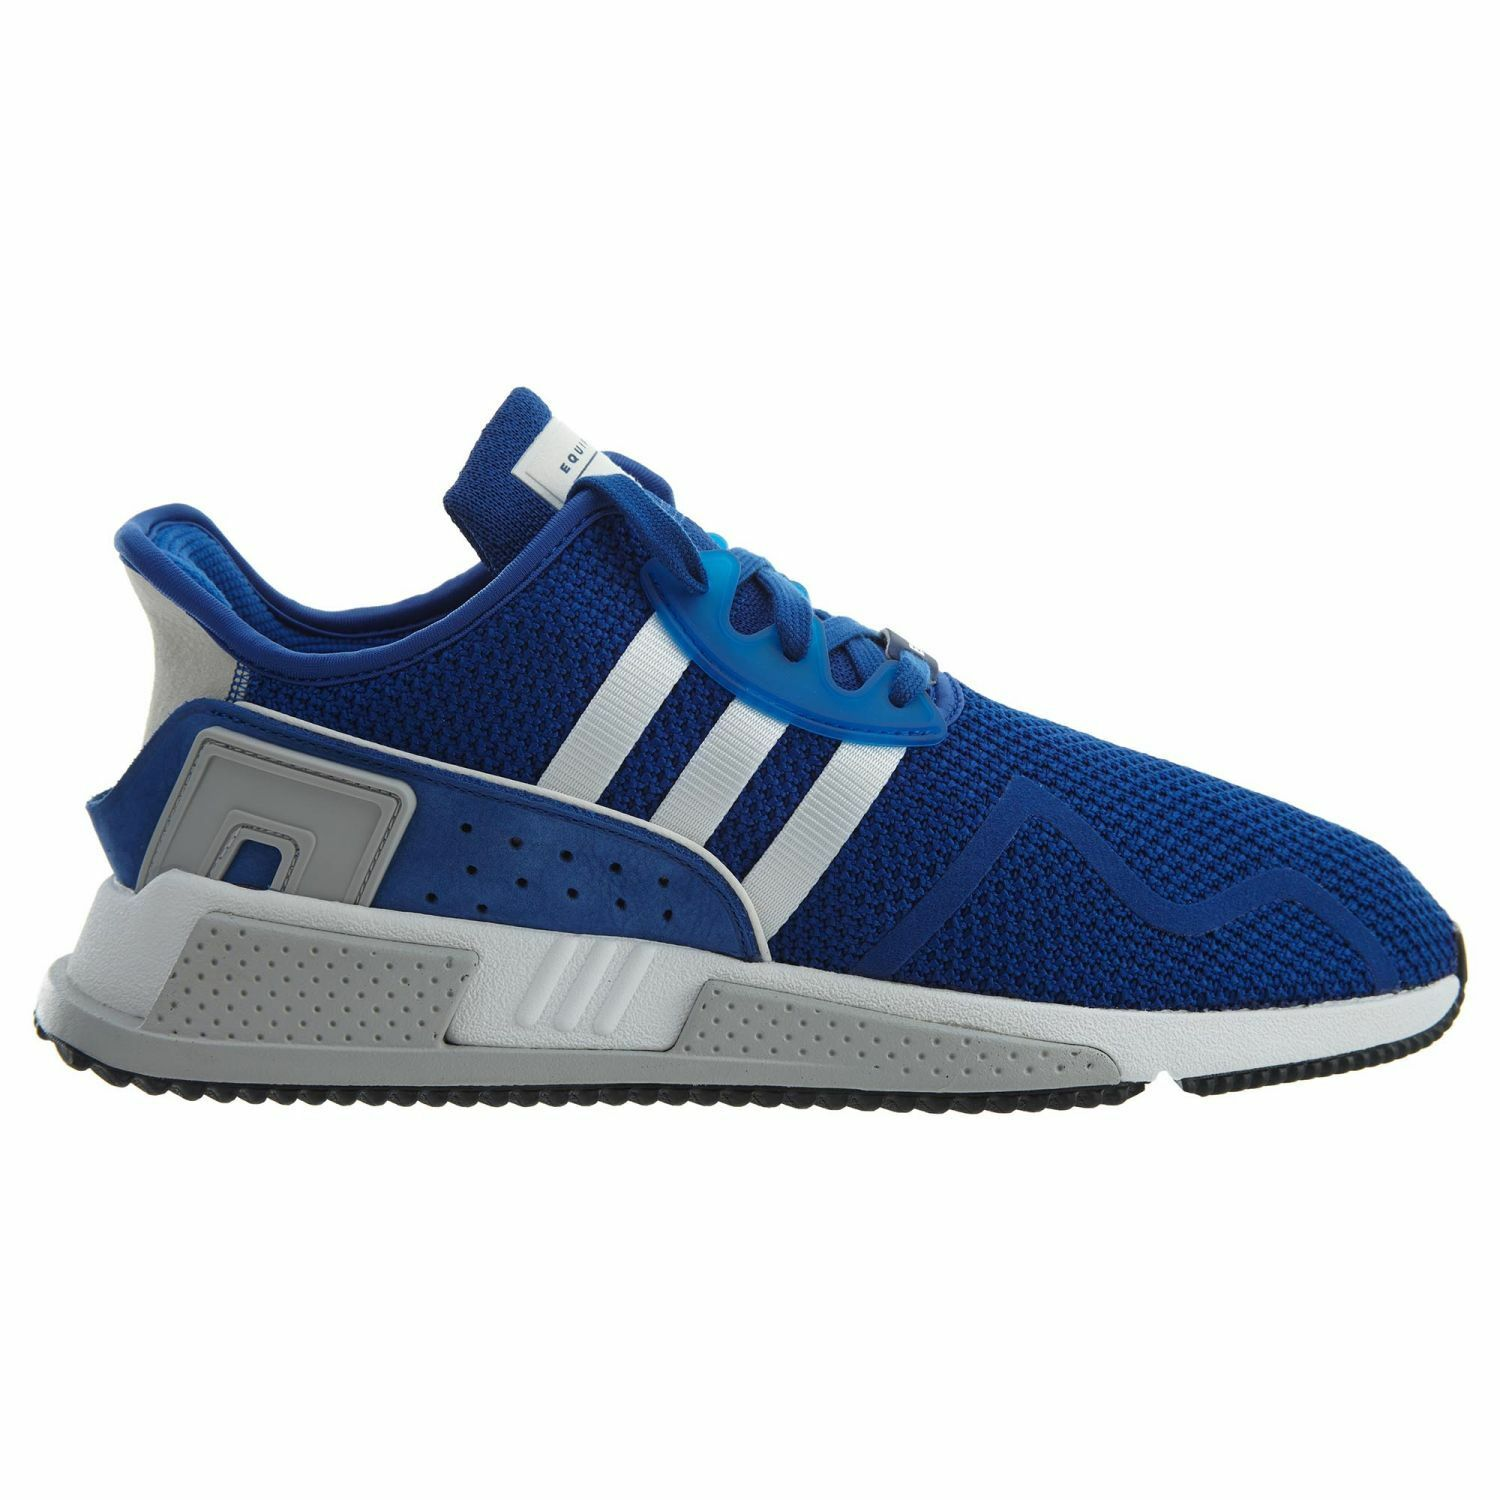 Adidas EQT Cushion Adv Mens CQ2380 Royal Blue White Knit Running Shoes Size 10